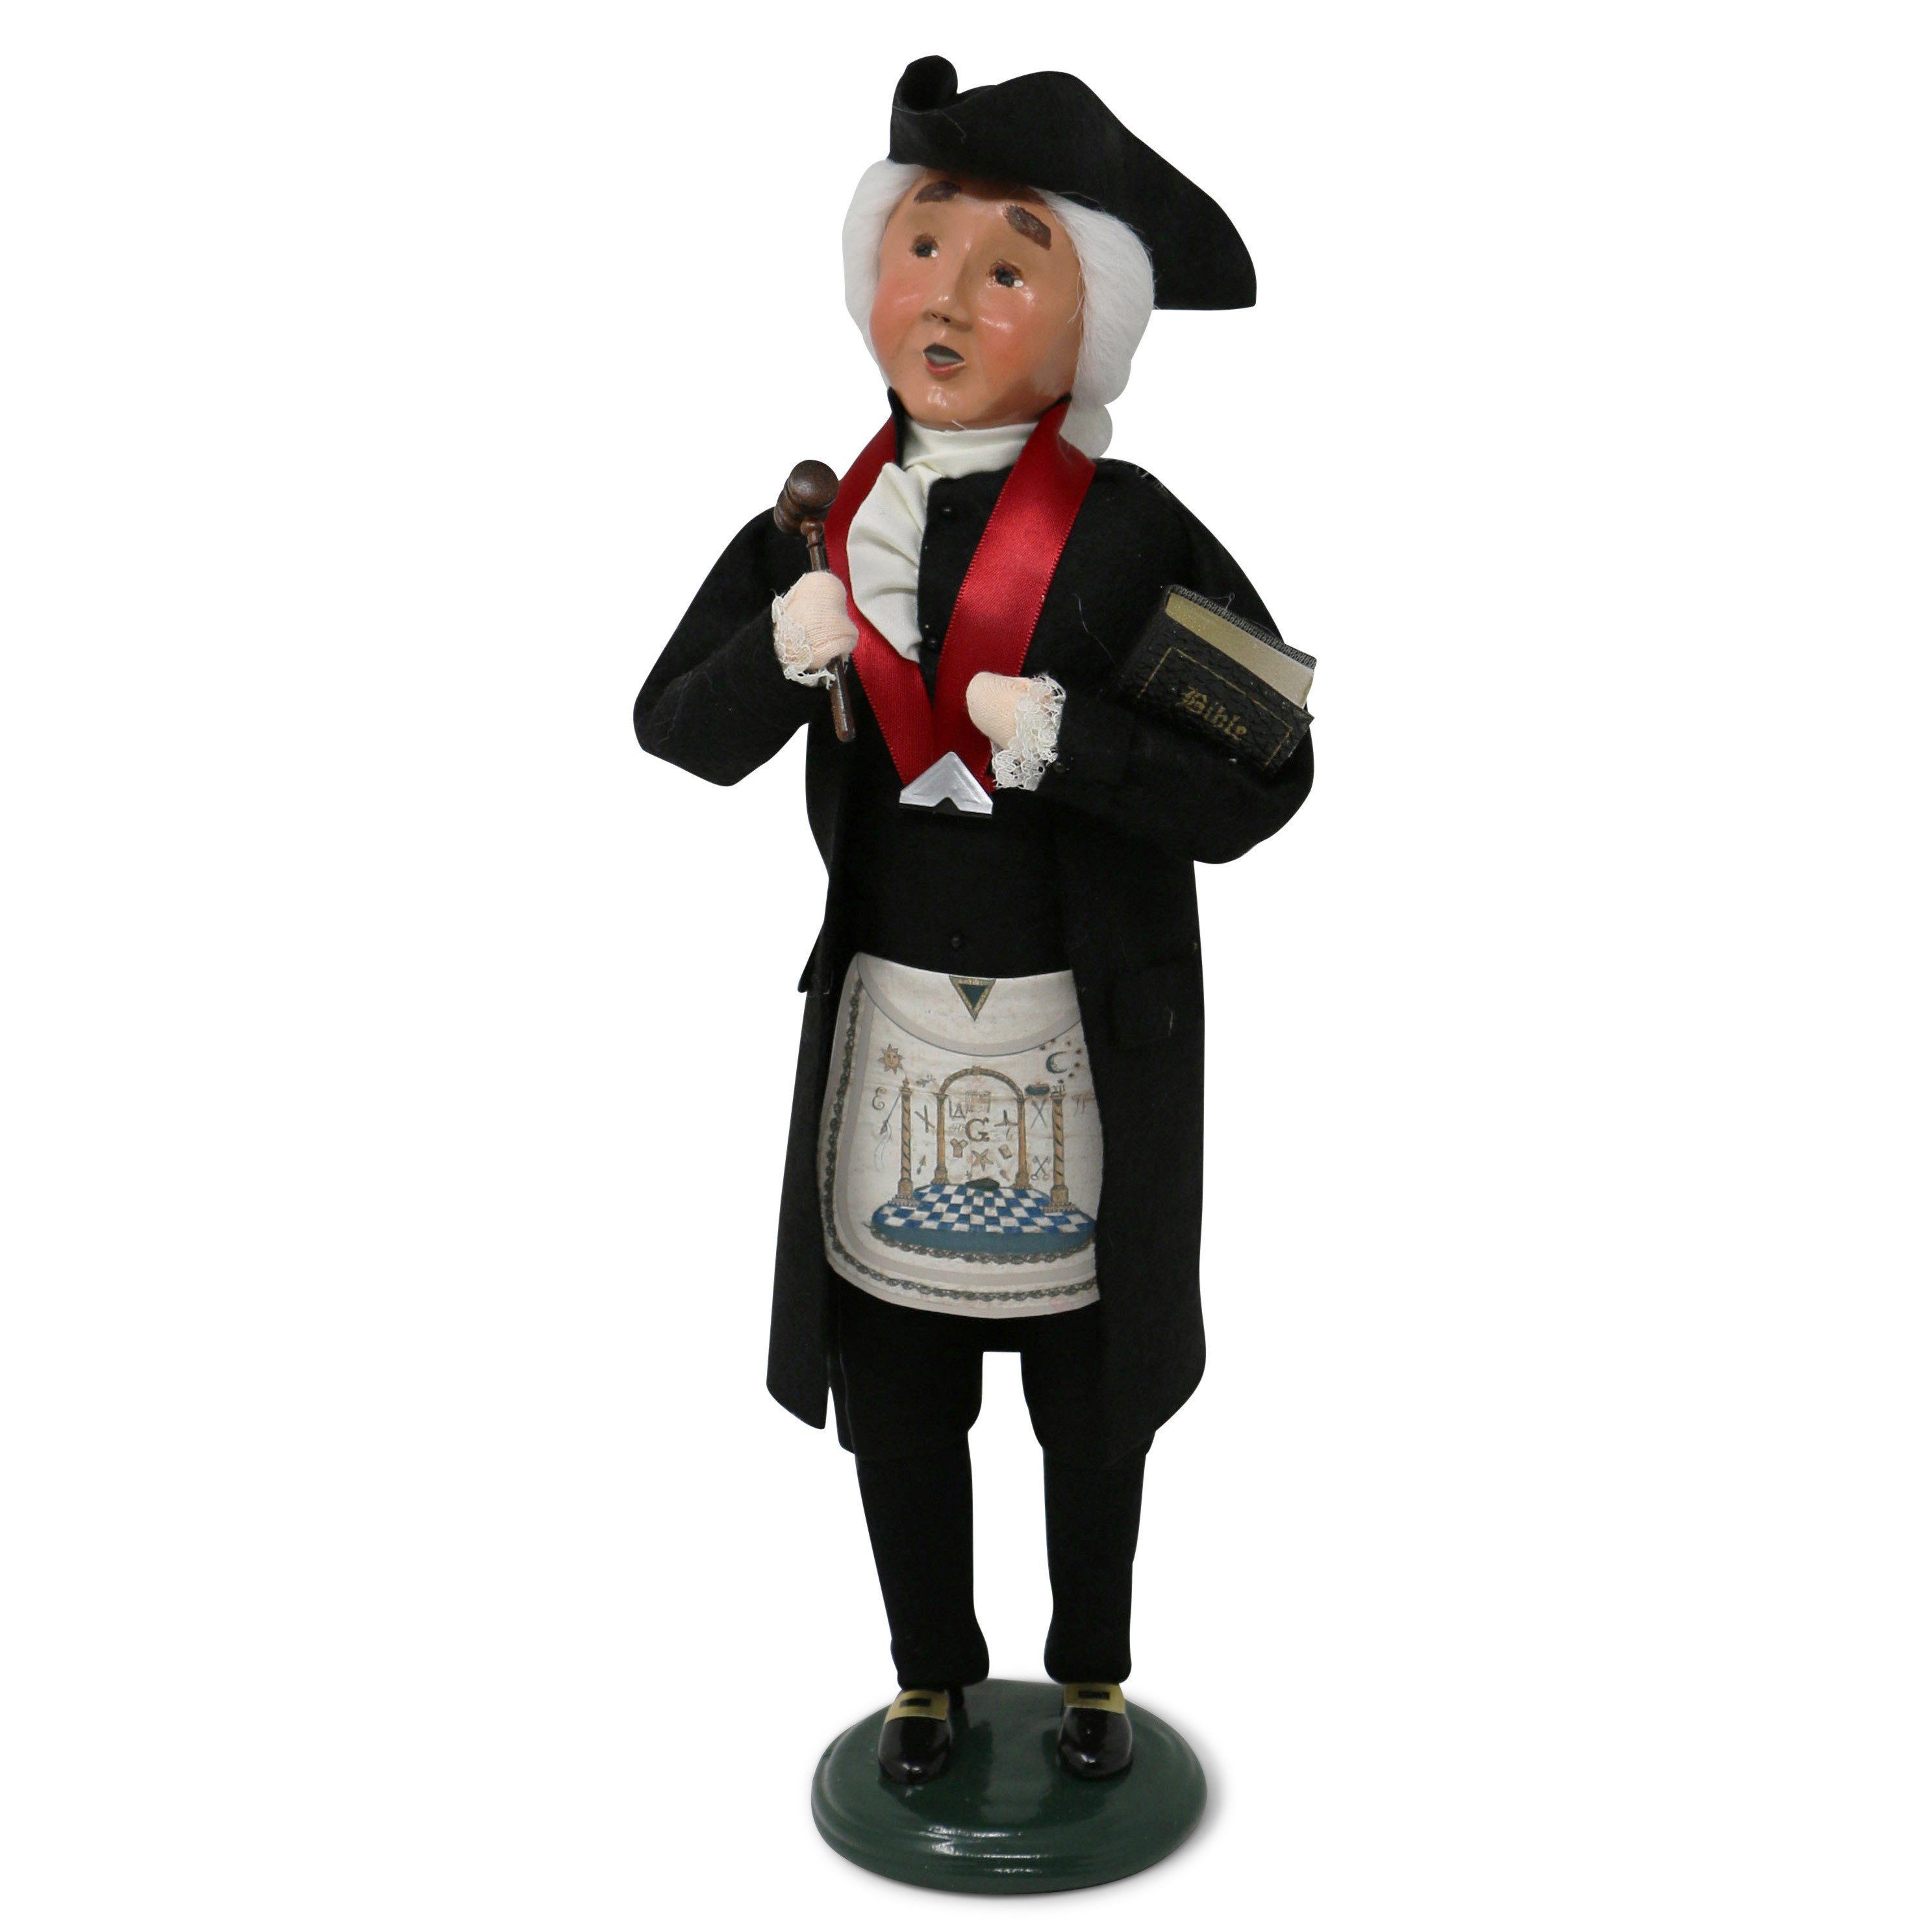 George Washington the Mason Caroler